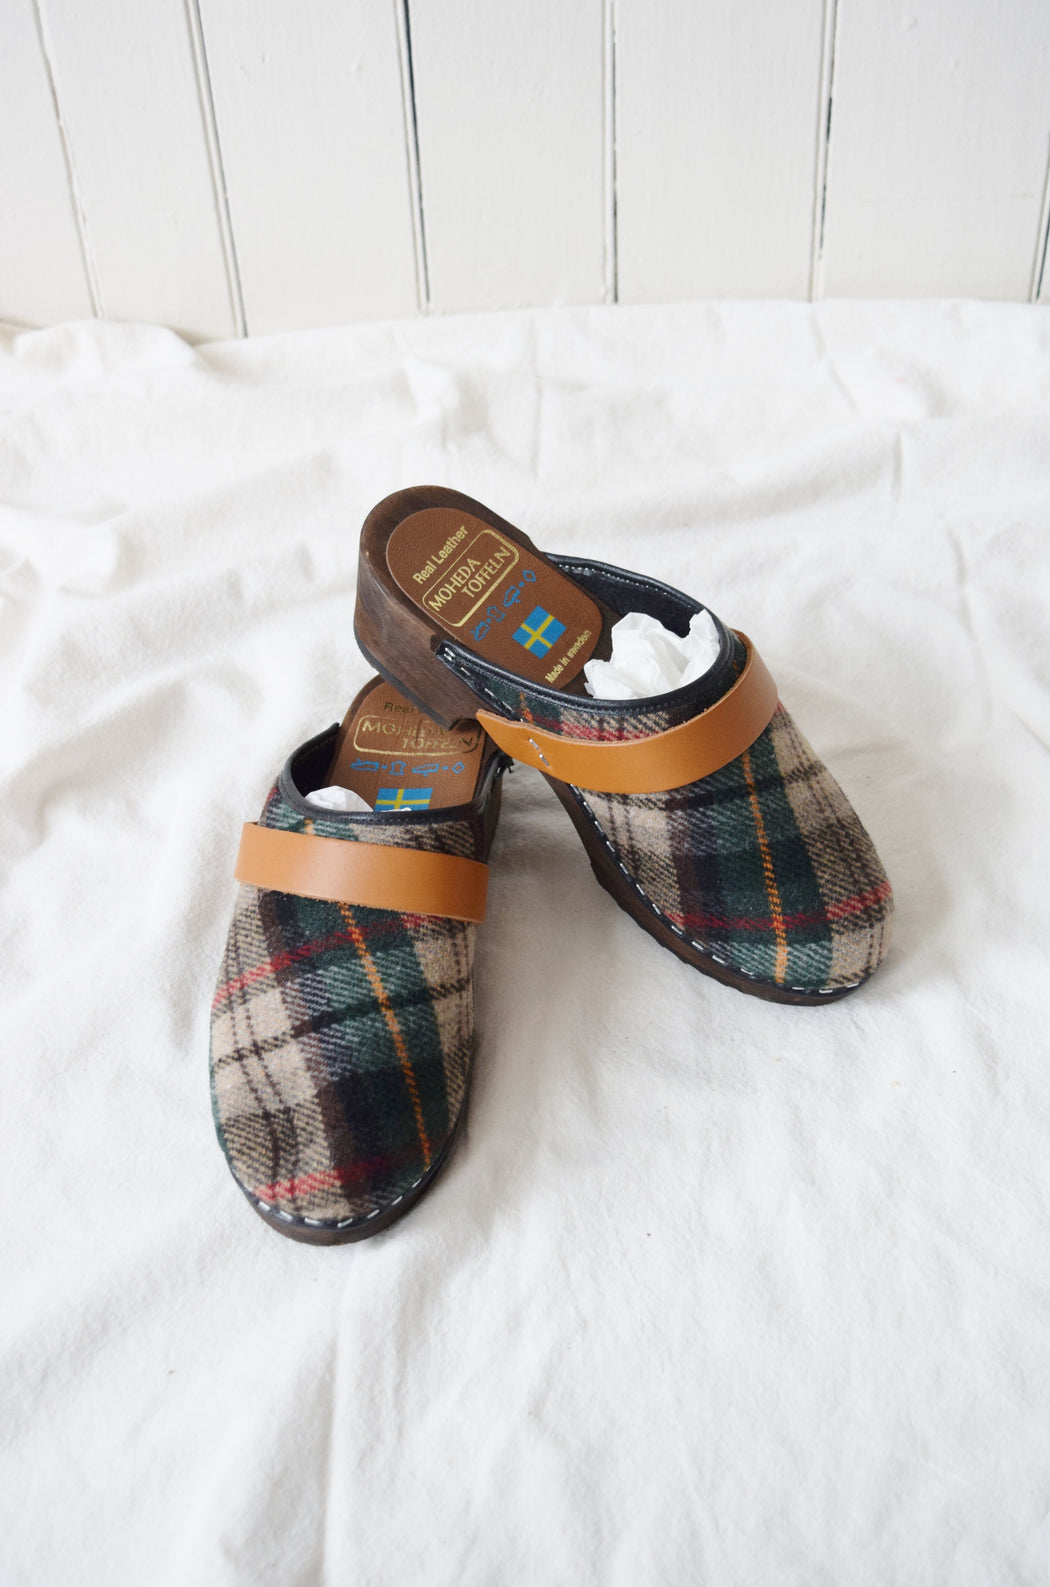 Classic Swedish Clogs in Fall Plaid by Moheda Toffeln | US 6.5 (EU 37, UK 4.5)